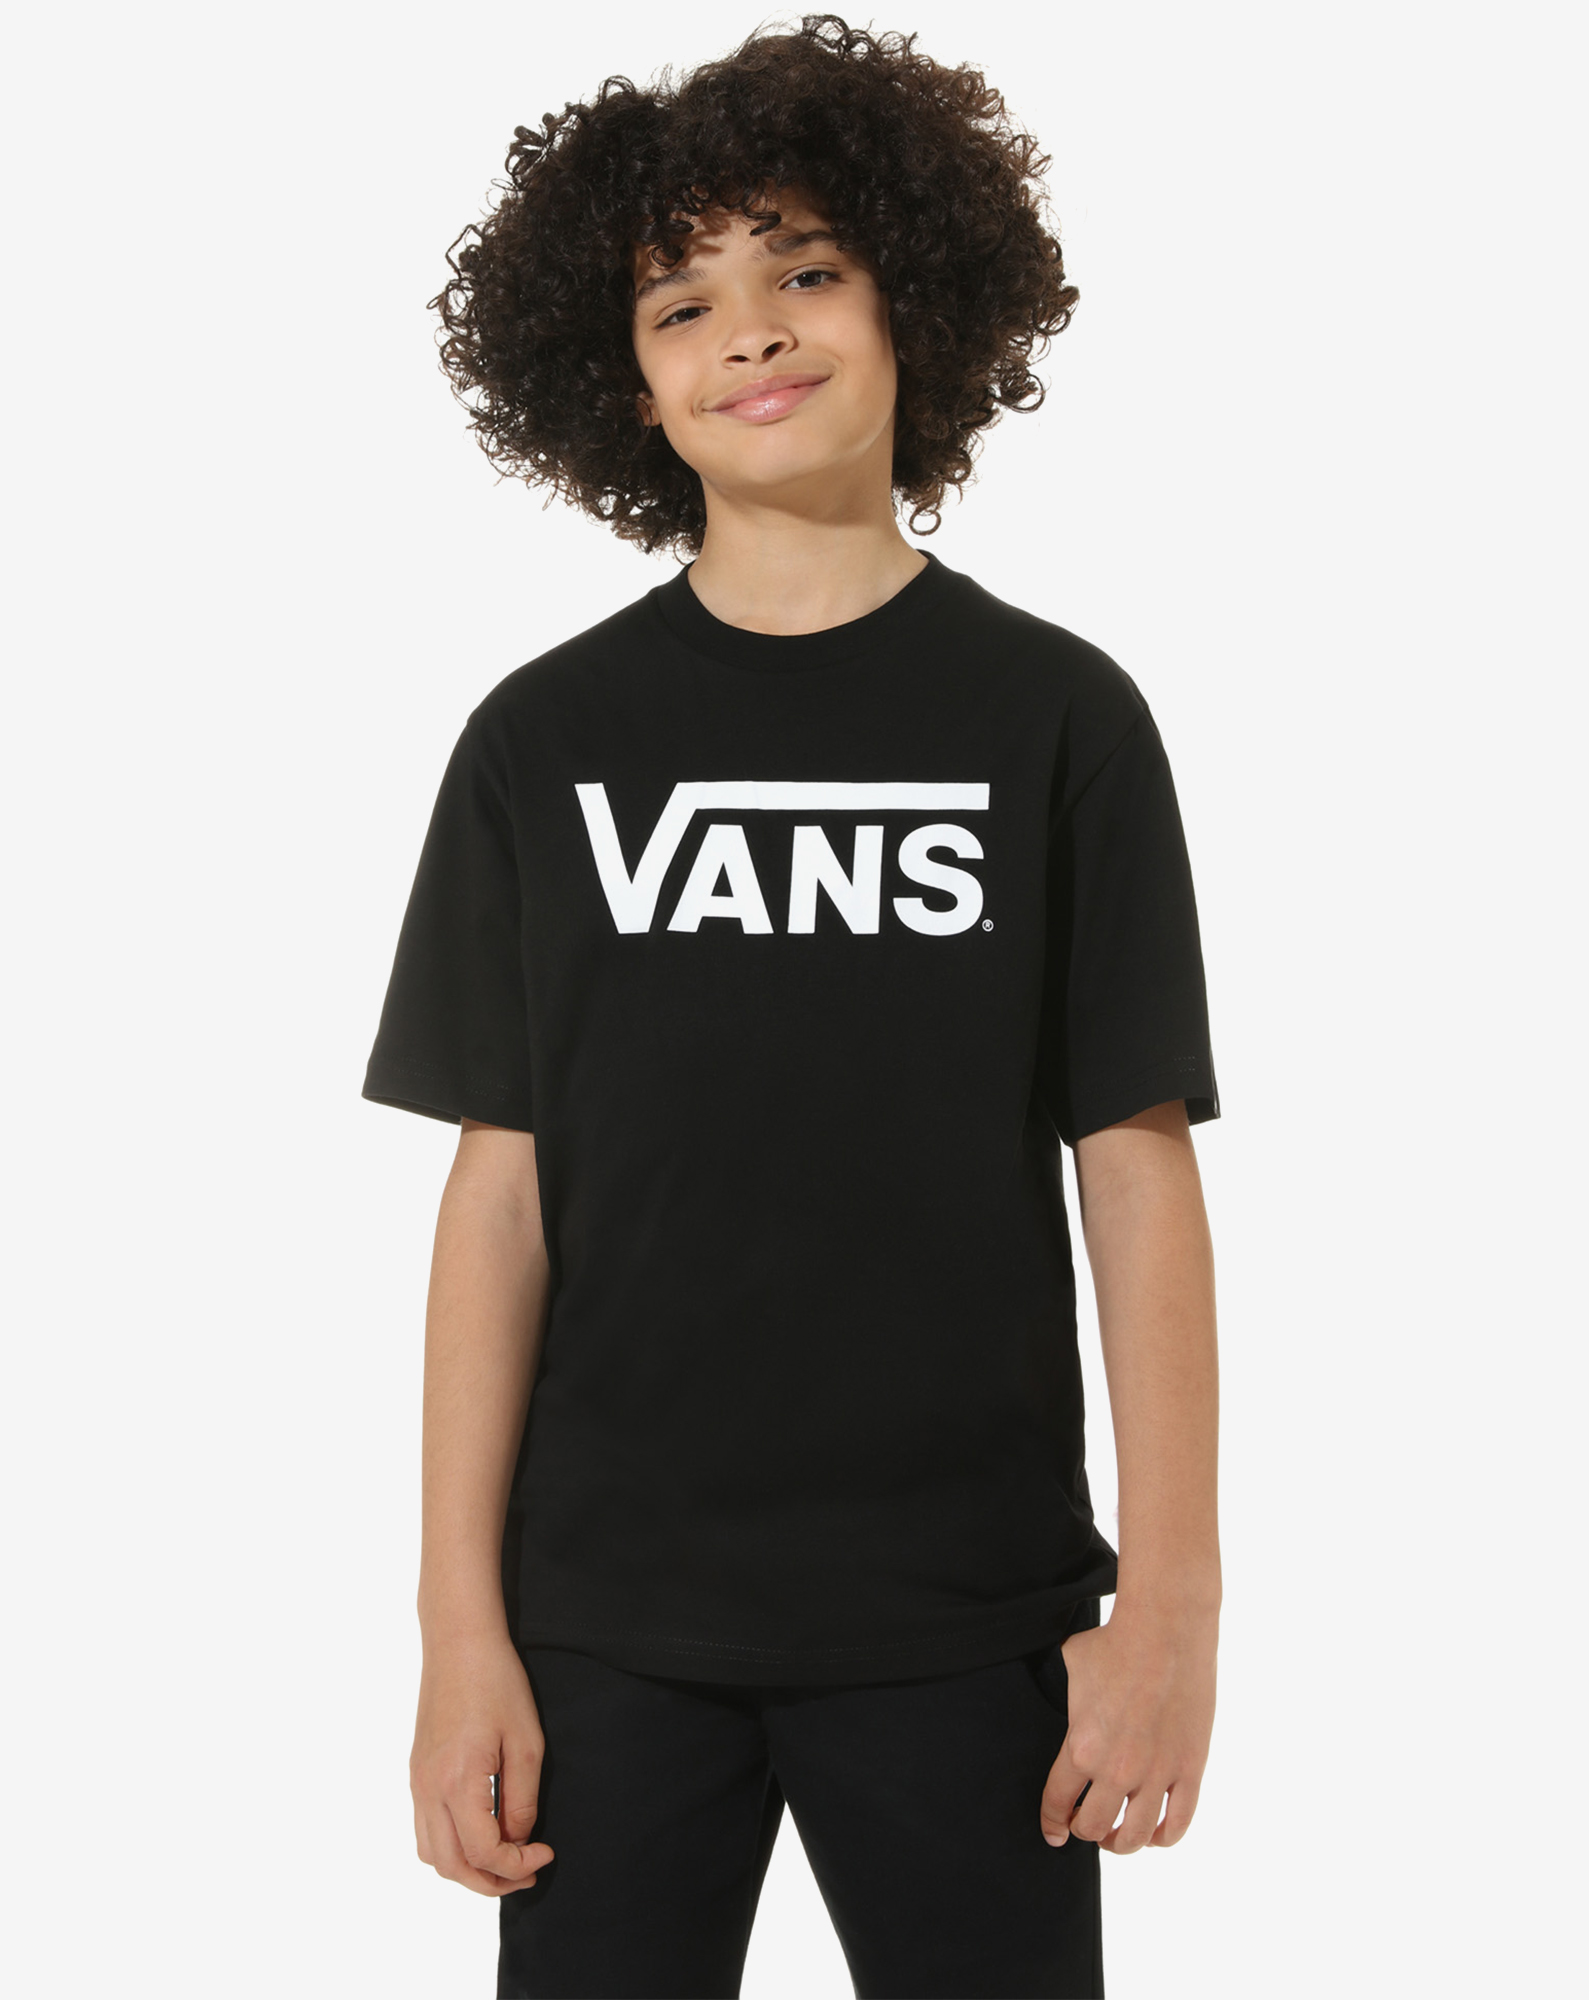 BY VANS CLASSIC BOYS Black/White